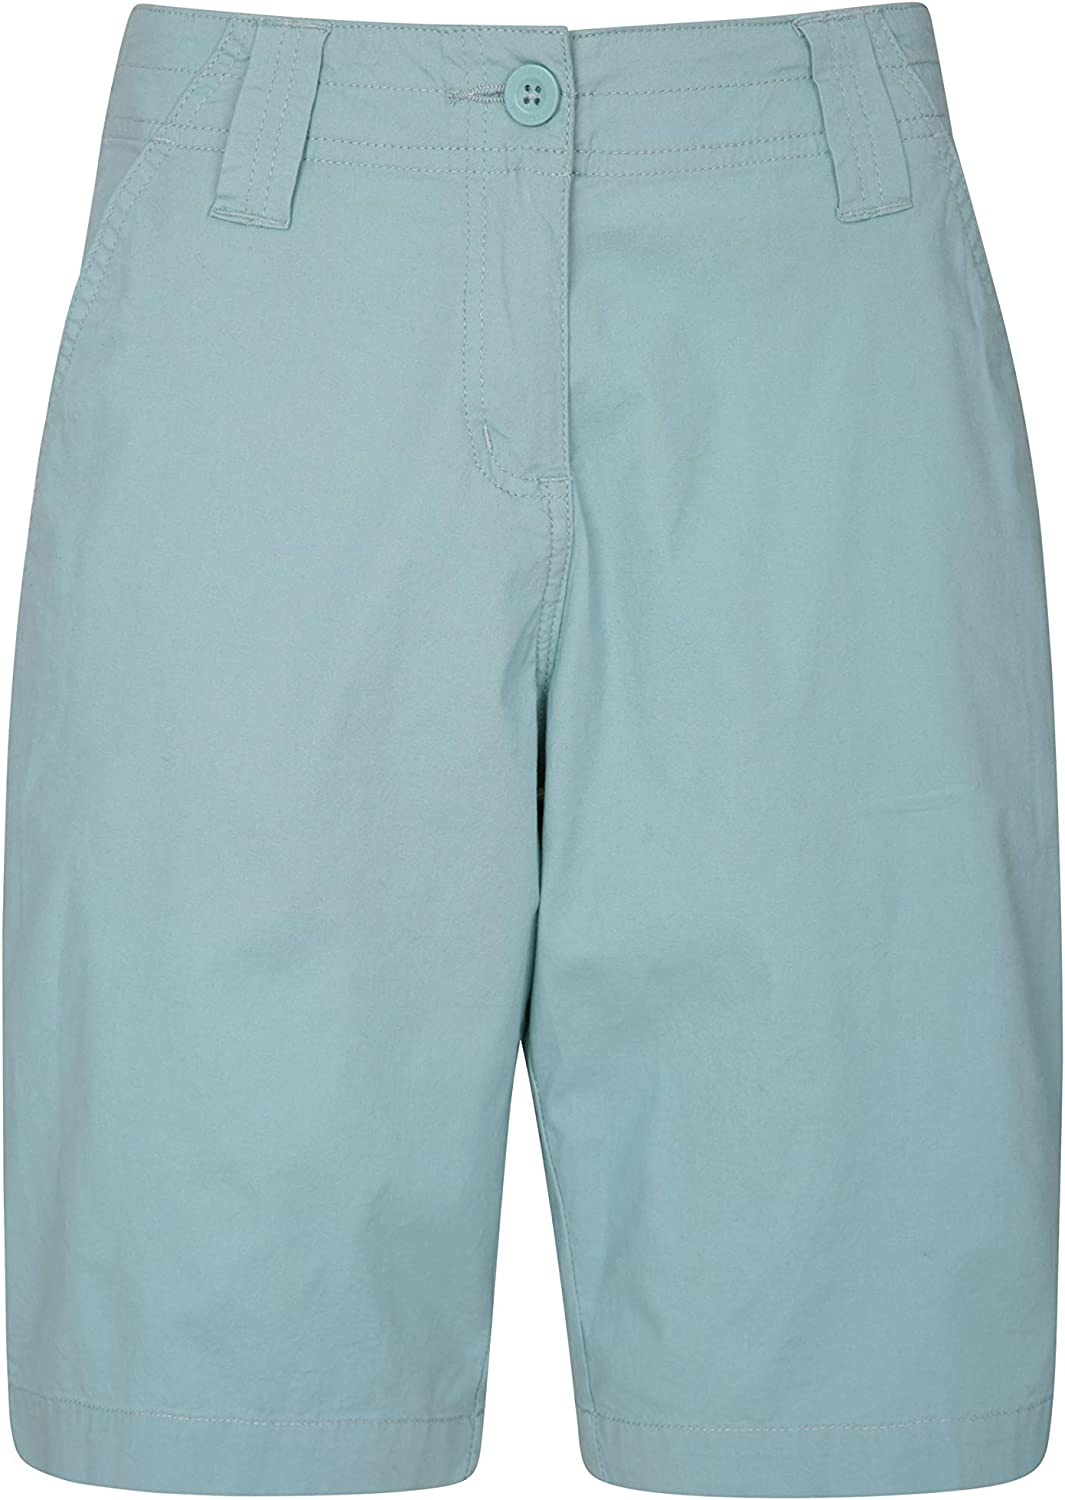 Mountain Warehouse C Stretch Womens Shorts - Knee Length Summer Pants